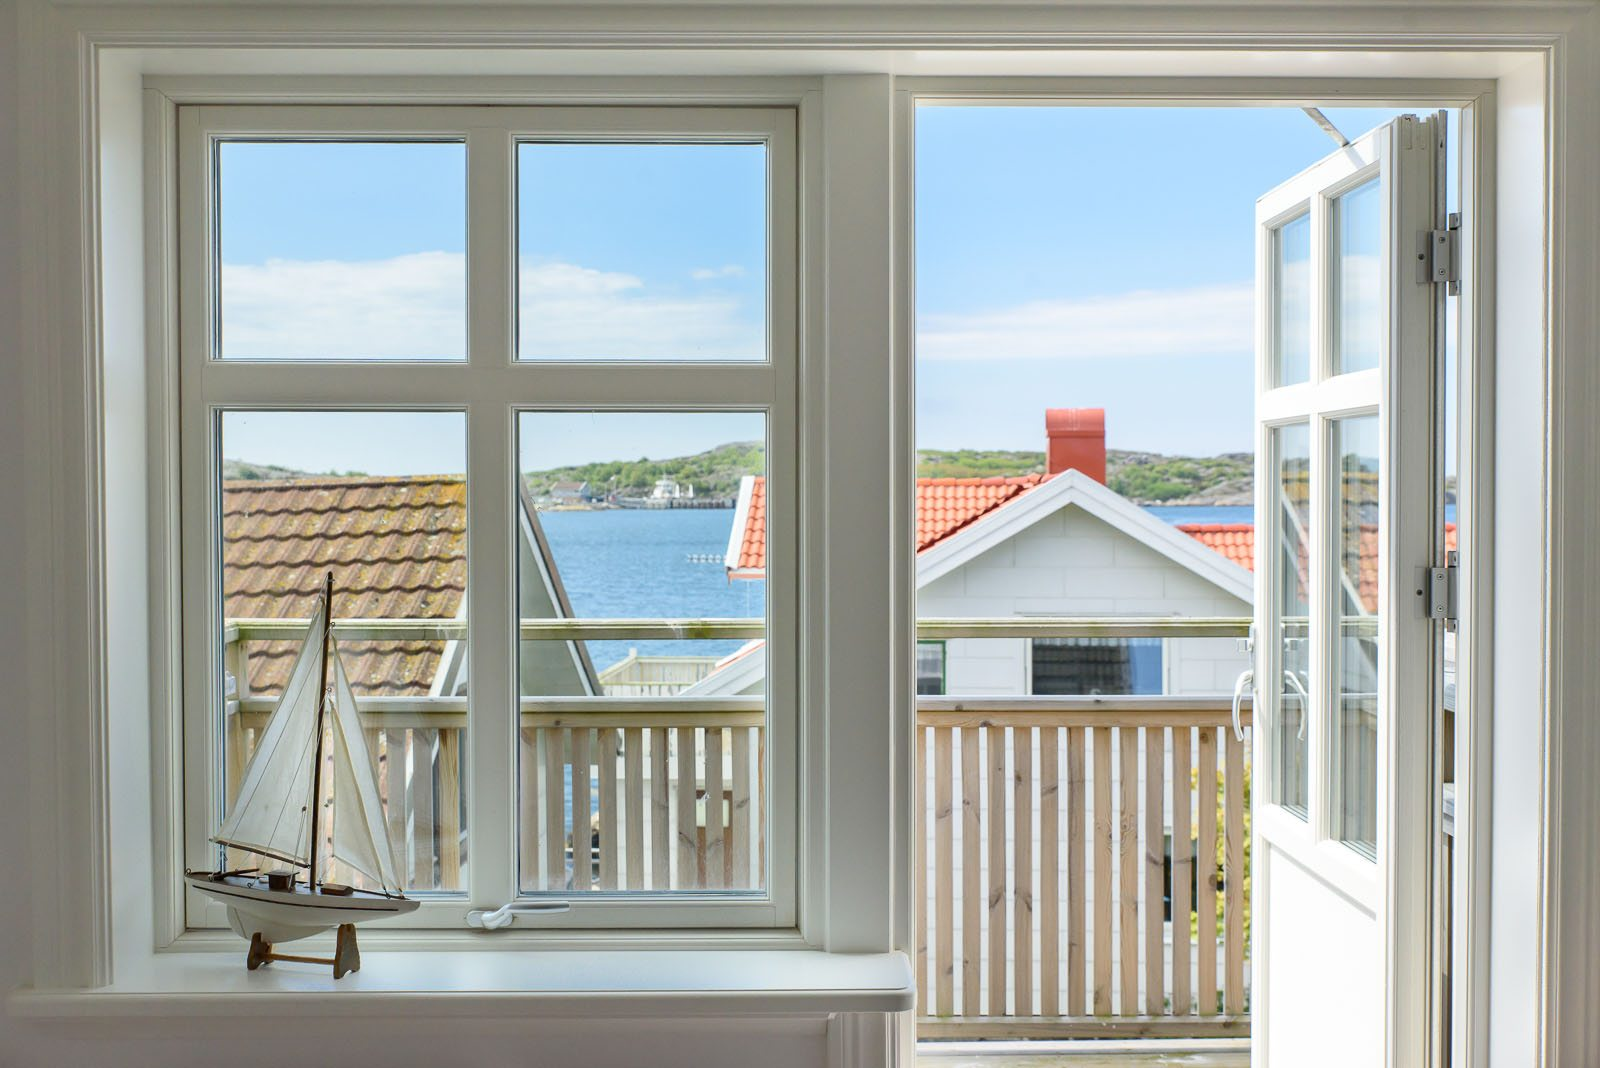 Inspiring photography from Westcoast Windows photoshoot on the West coast of Sweden